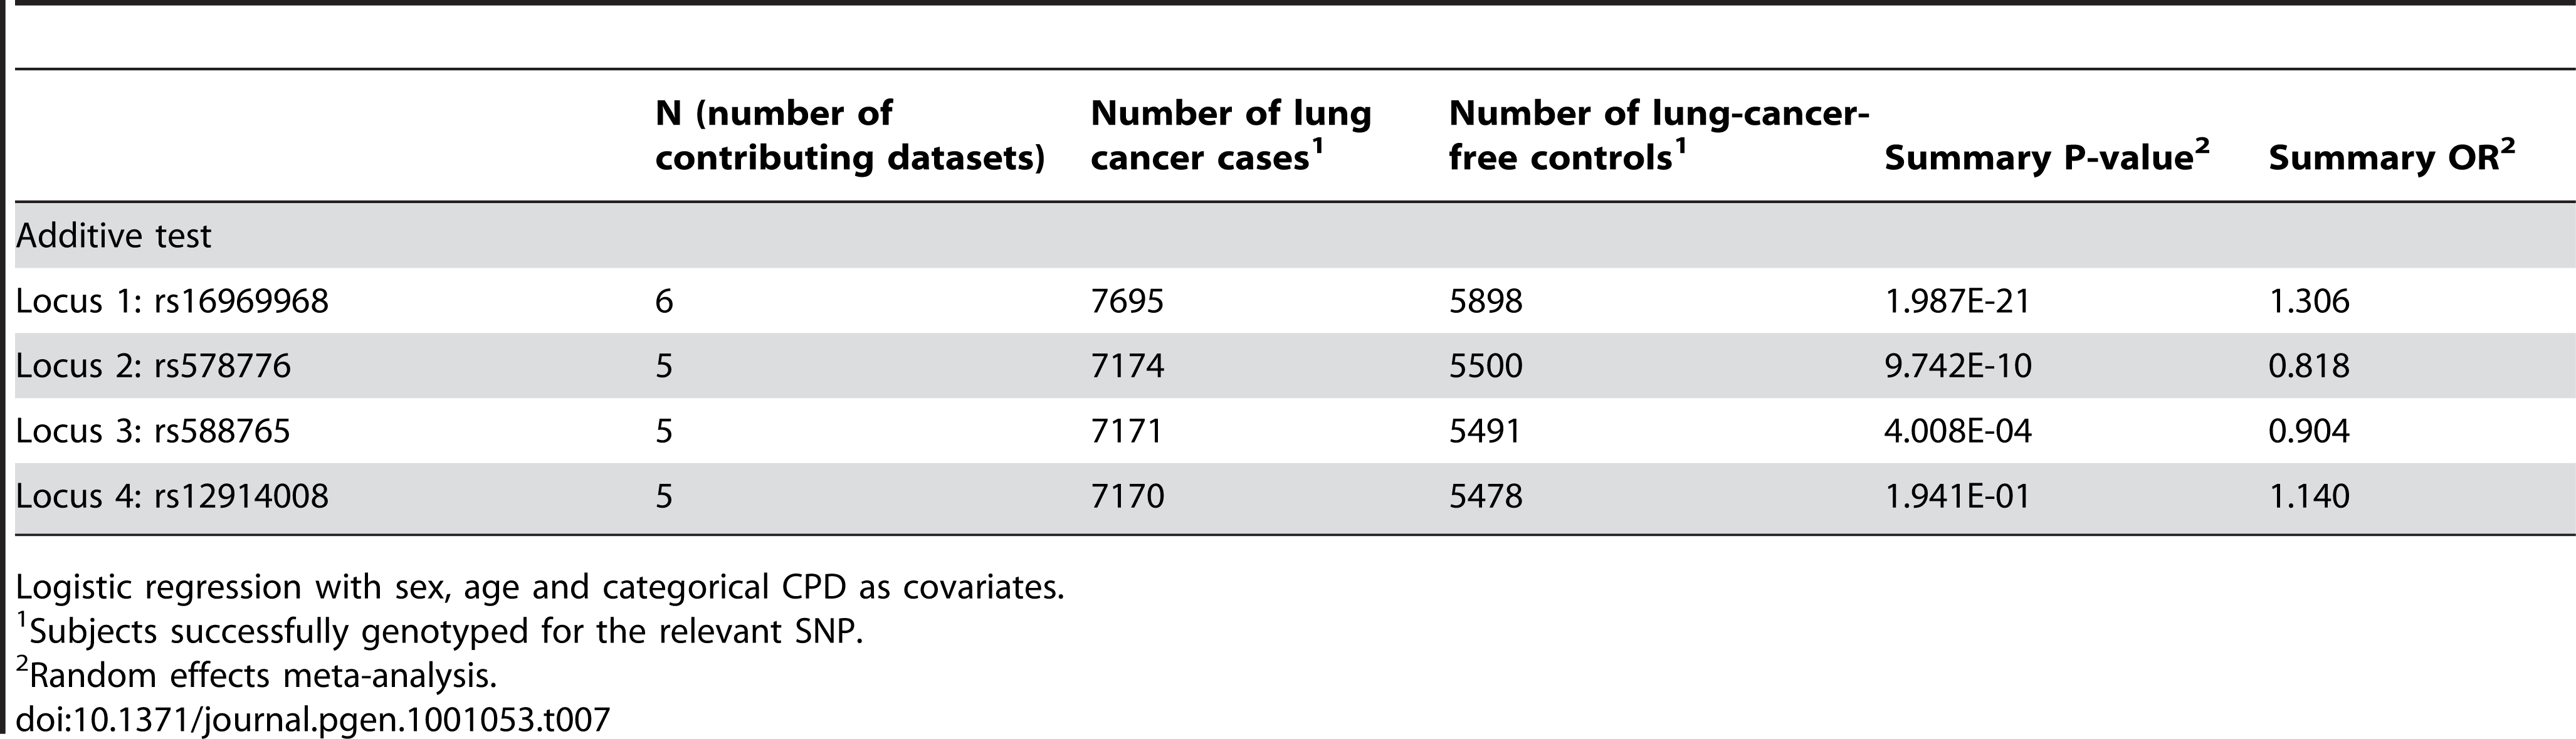 Meta-analysis results for lung cancer.